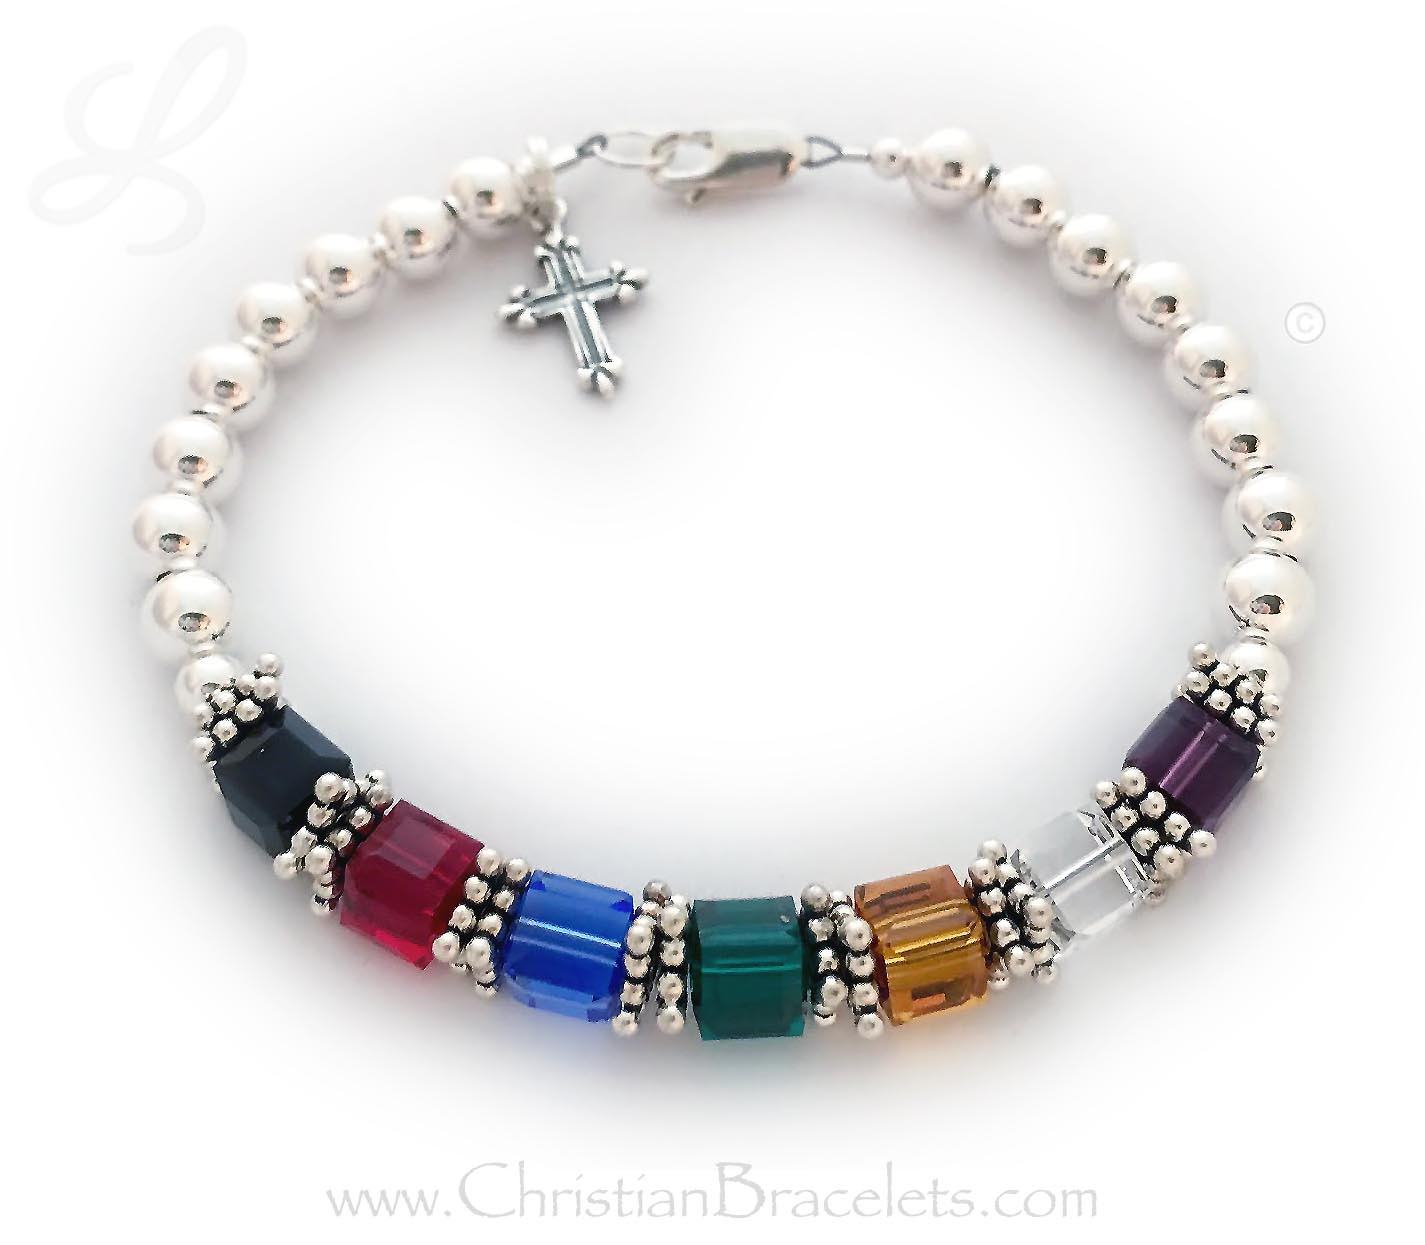 Salvation Bracelet with Square Swarovski Crystals and a cross charm./